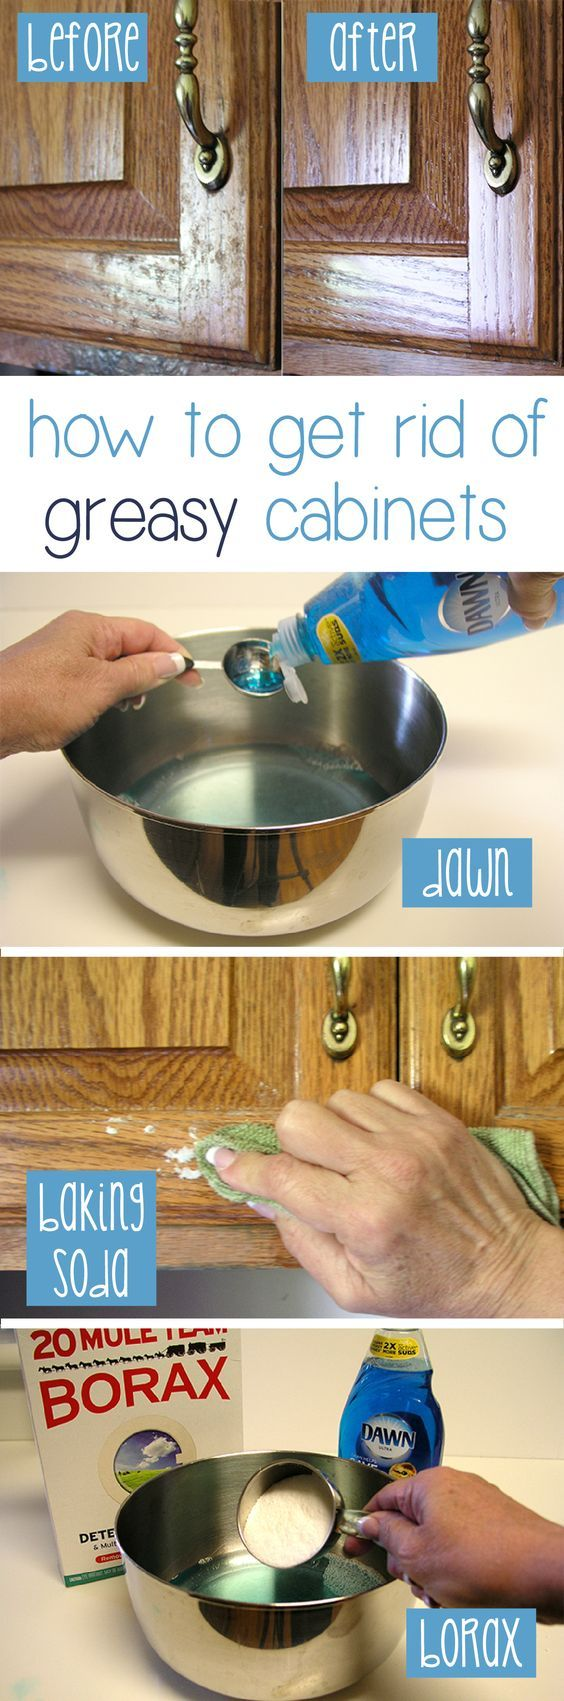 No more greasy cabinets! Here are a few different solutions that can help you get your kitchen cabinets squeaky clean: